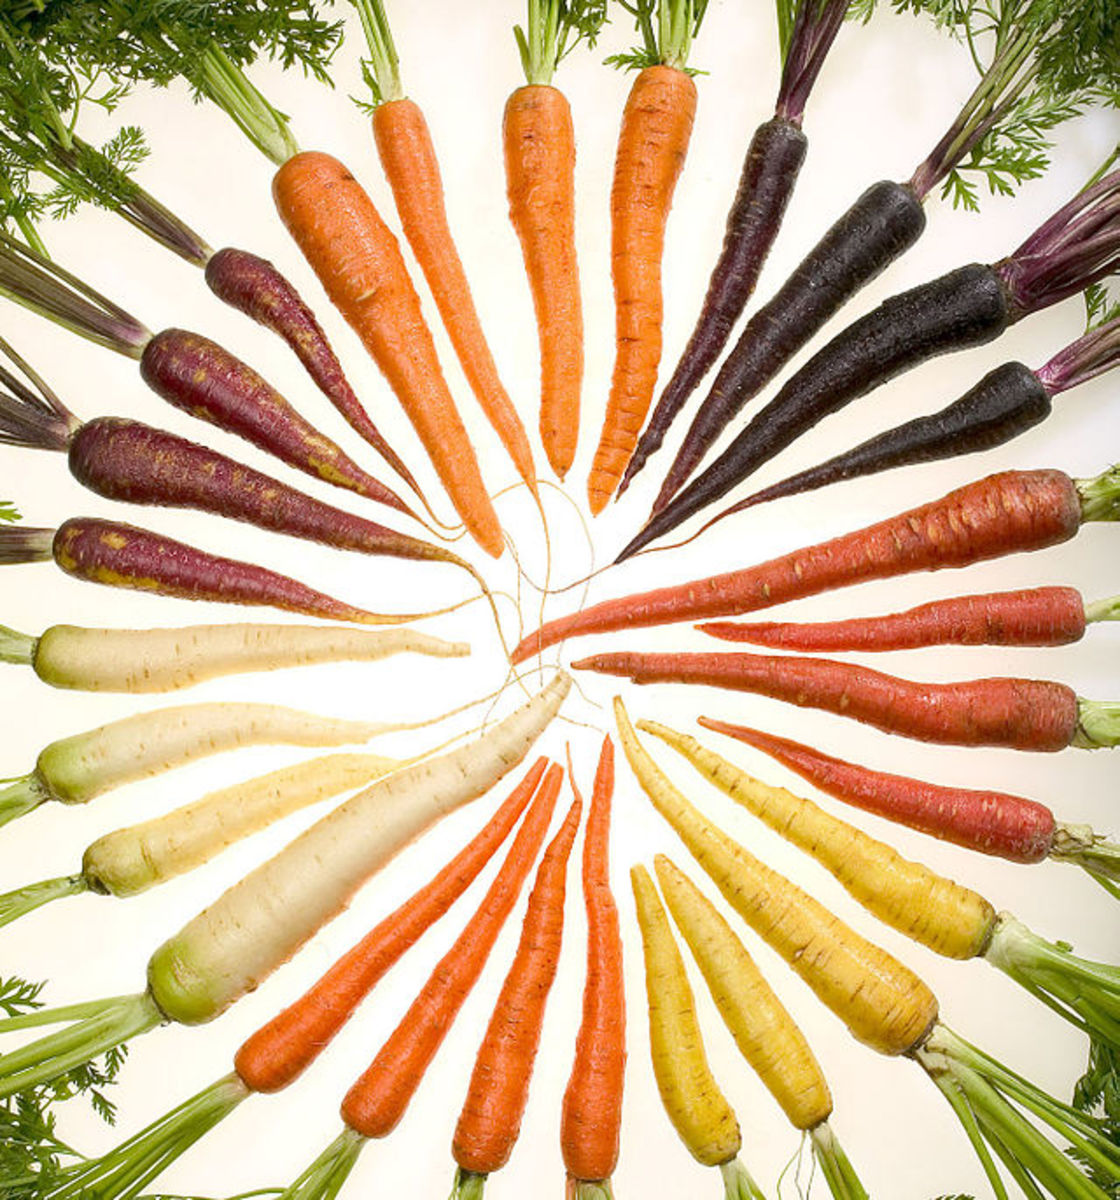 Twenty Health Benefits of Carrots